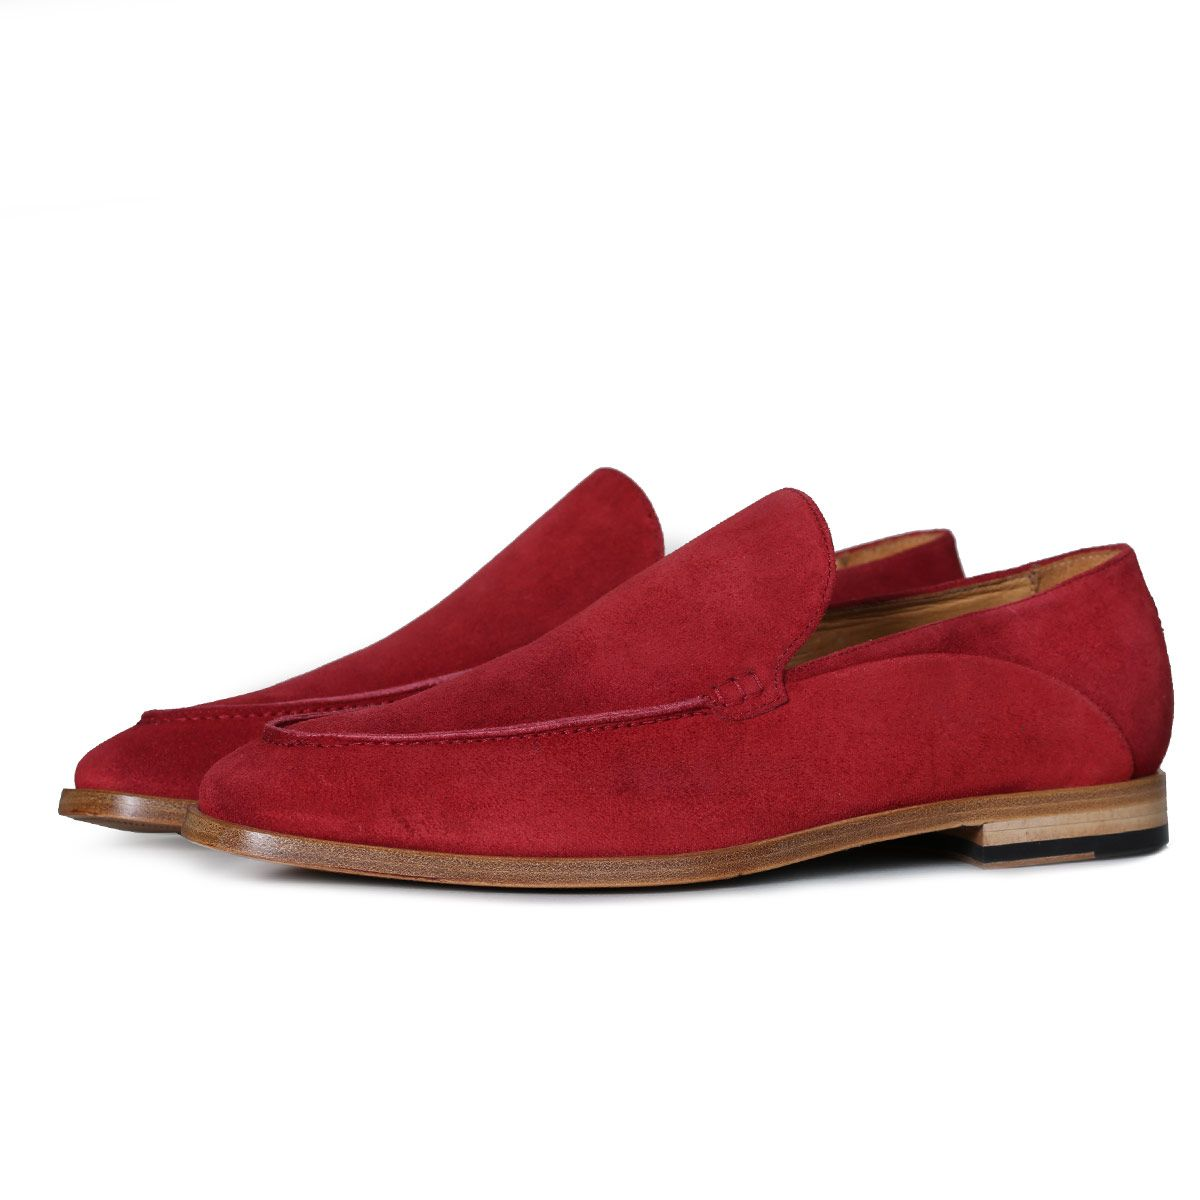 Oliver Sweeney Genoa Red - Suede Moccasin